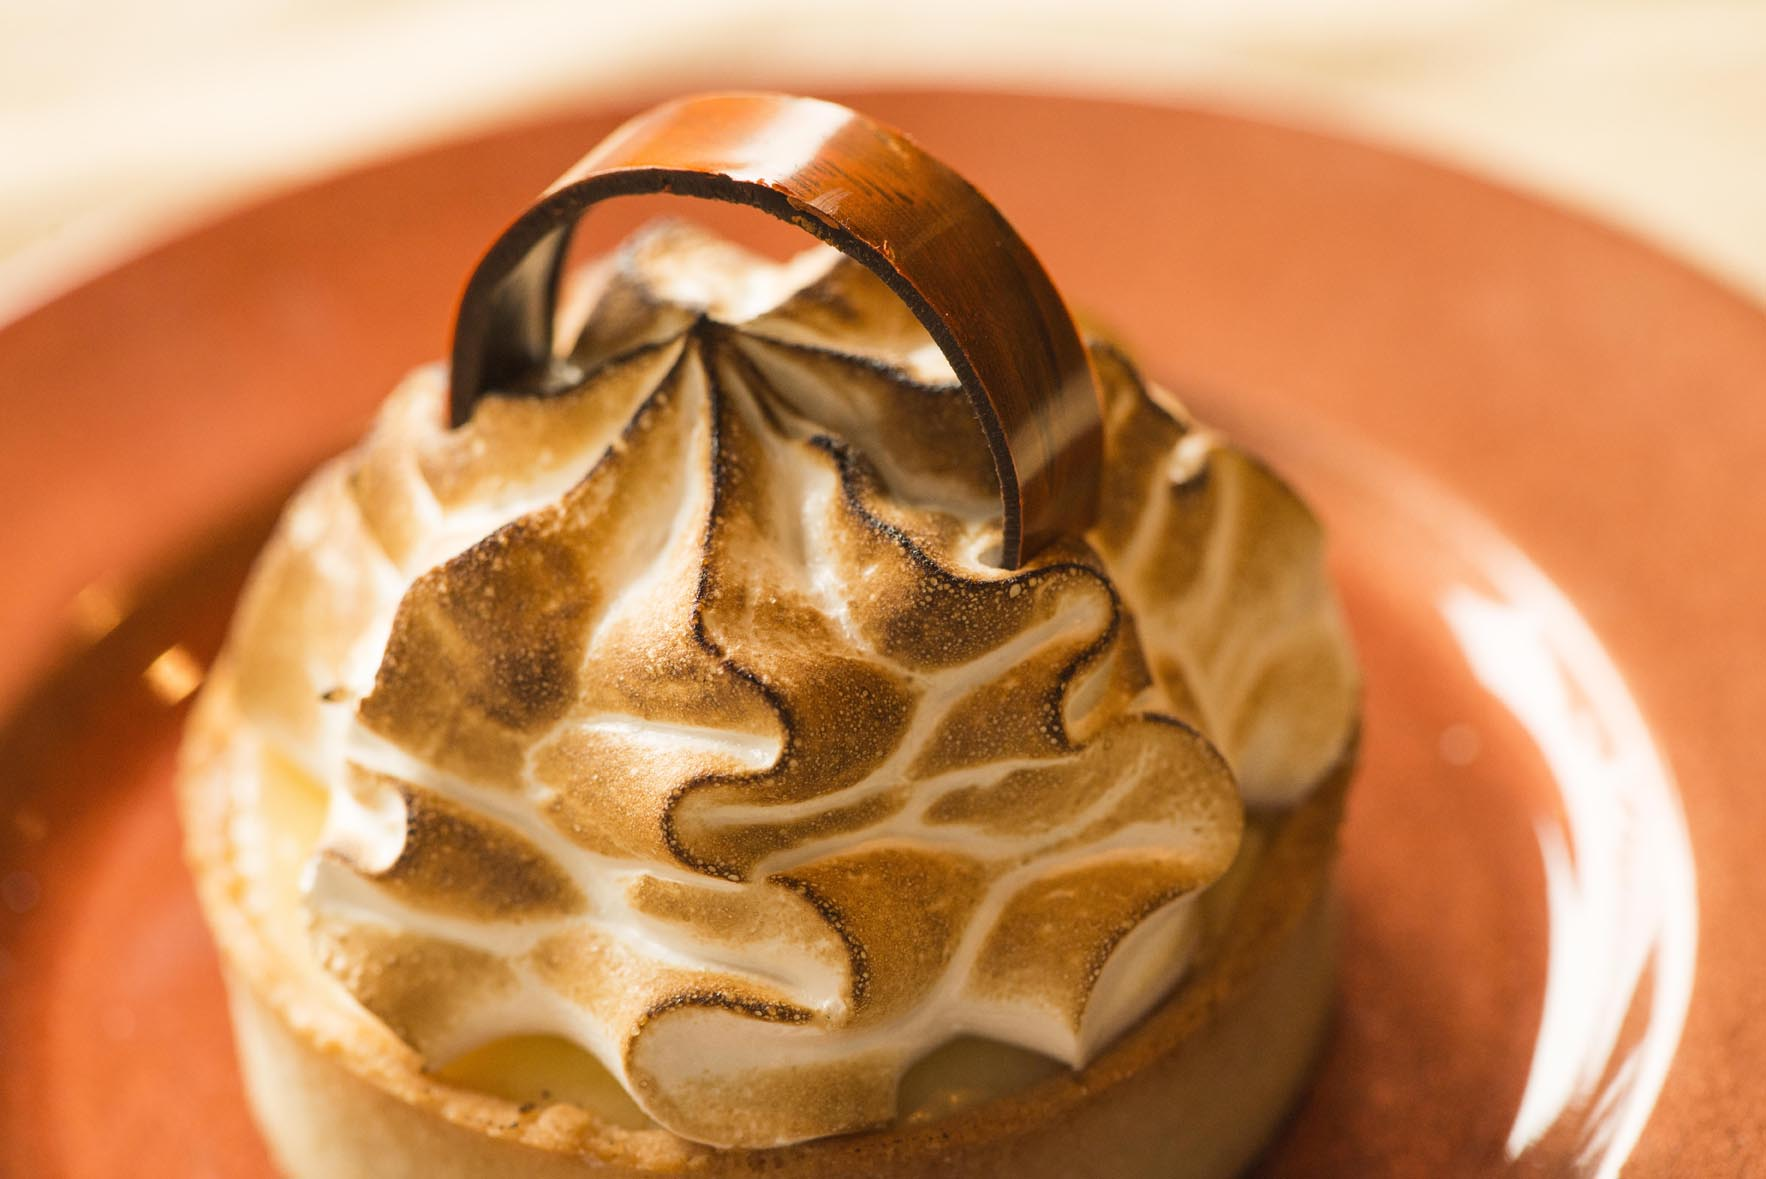 Lemon Meringue Tart Cocoa Bean Genvea